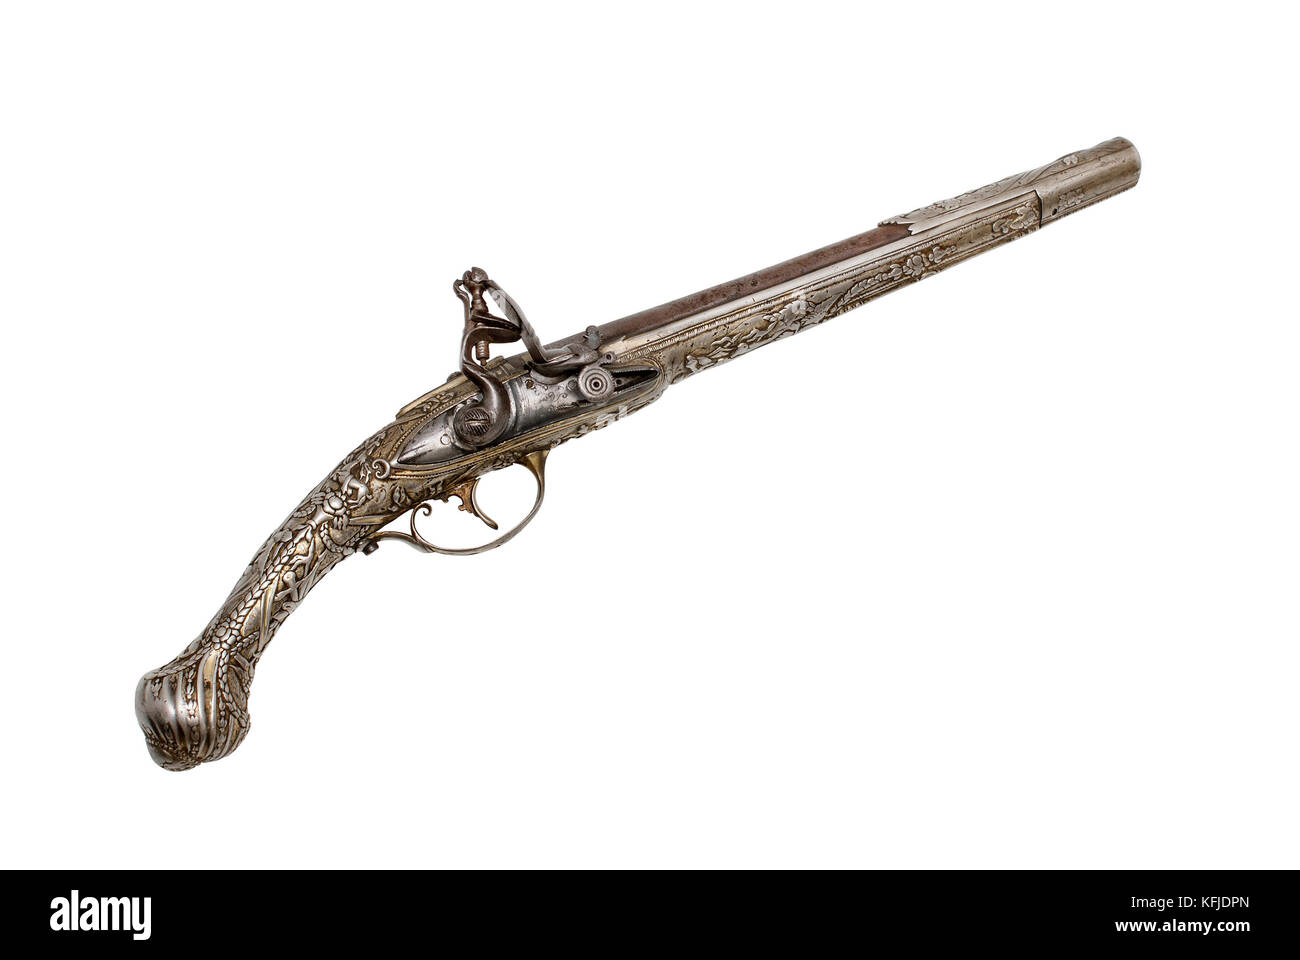 Beautiful decorated example of flint gun. End of the18th-the beginning of the 19th centuries. Balcan weapons were - Stock Image